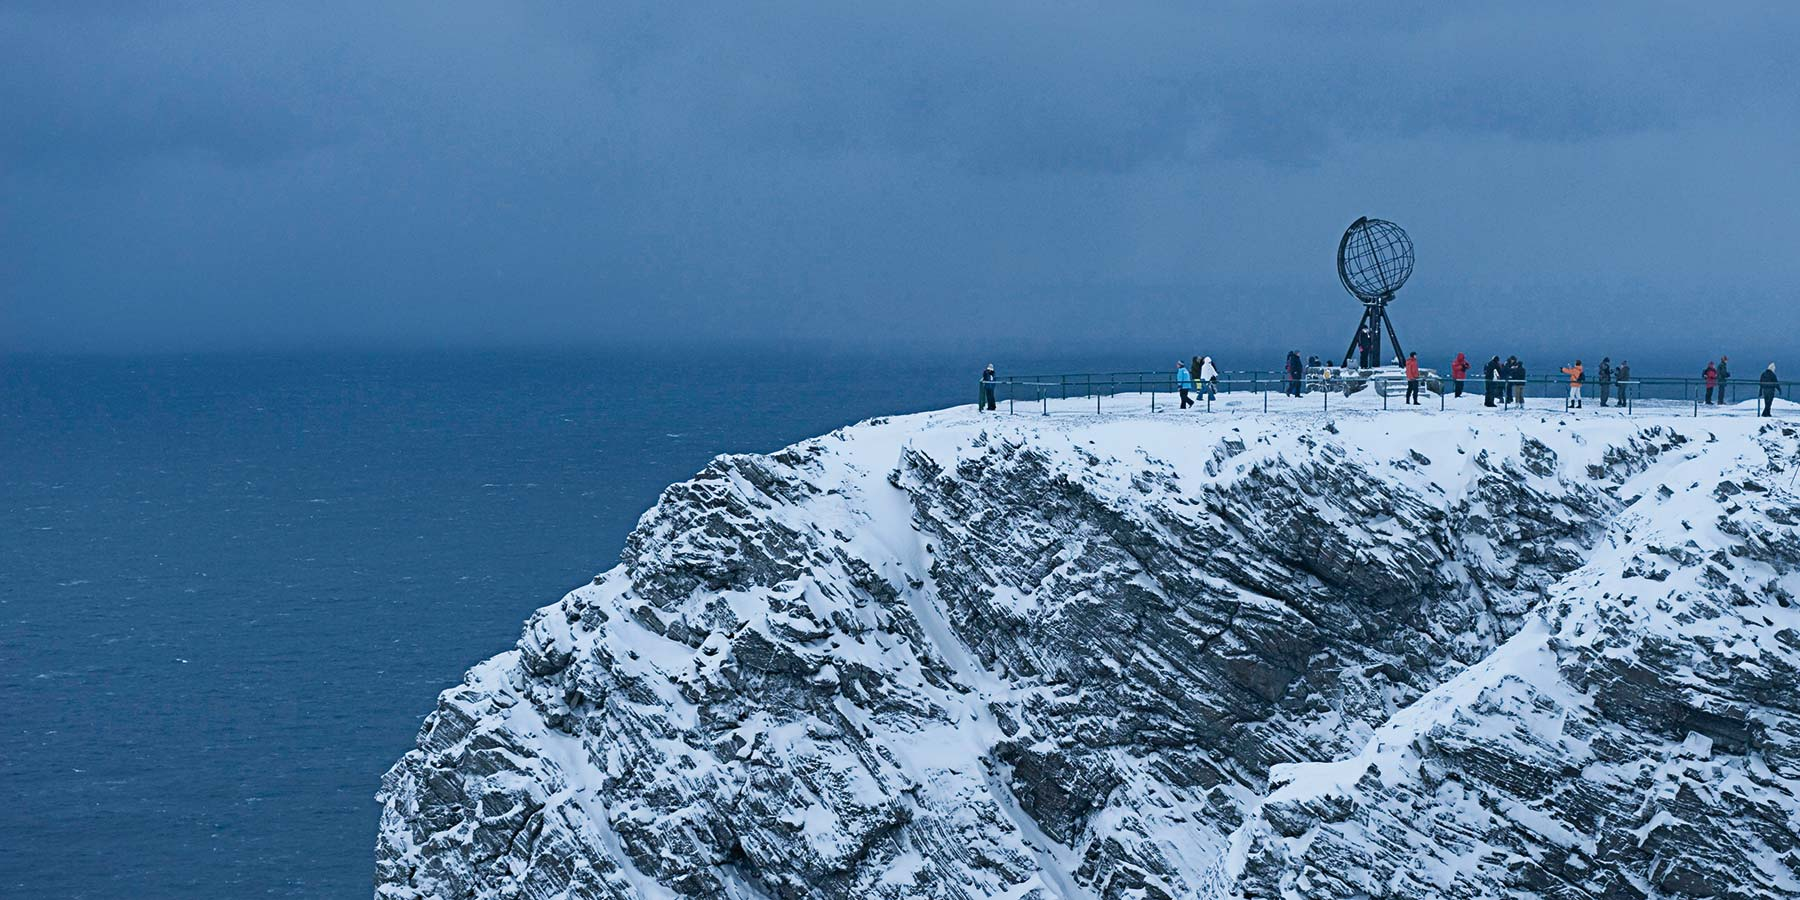 The North Cape©Klaus-Peter-Kappest1800x900.jpg